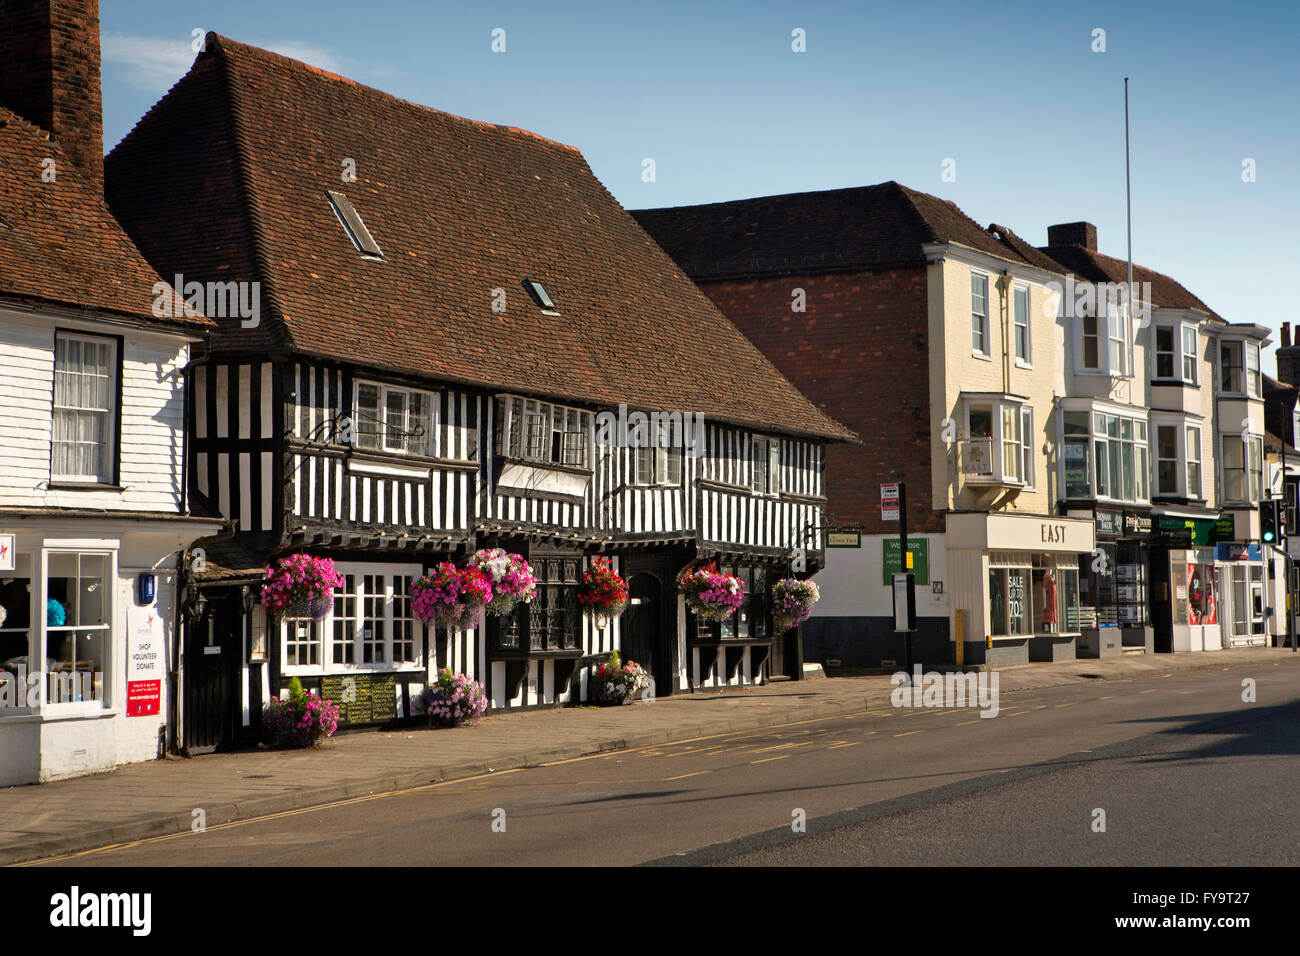 UK, Kent, Tenterden, High Street, Wealden Hall House, half timbered Great Hall - Stock Image